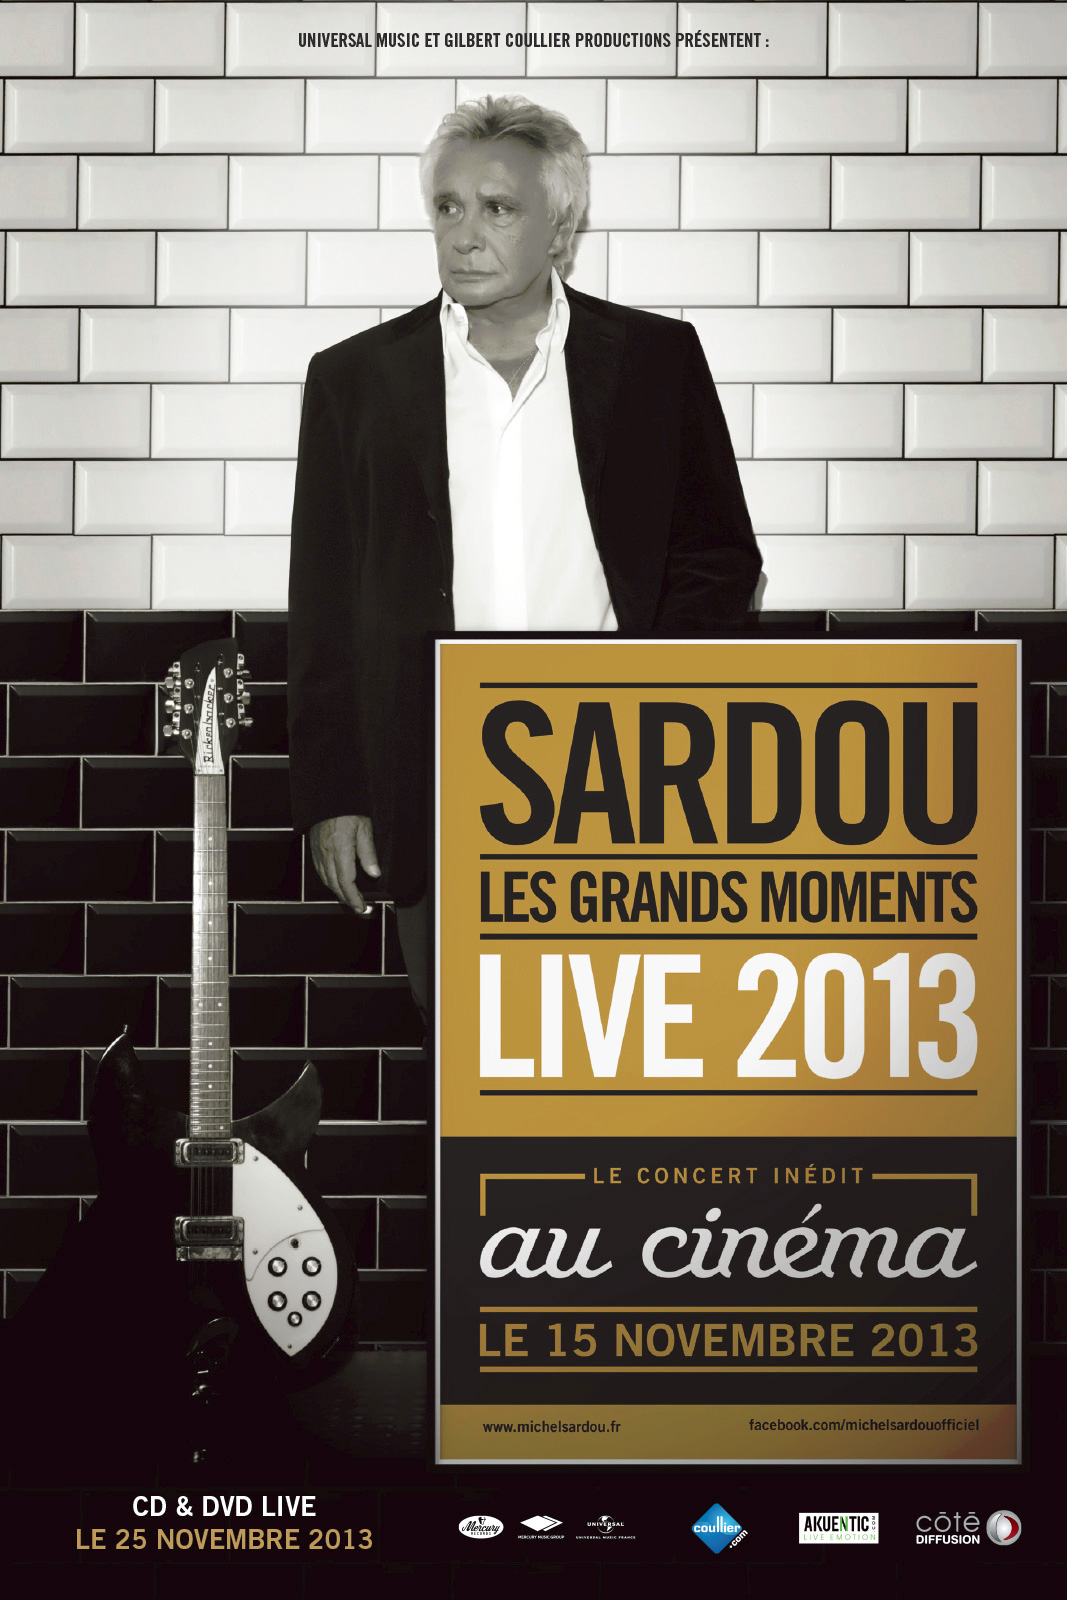 Télécharger Michel Sardou - live 2013 (Côté Diffusion) HD VF Uploaded